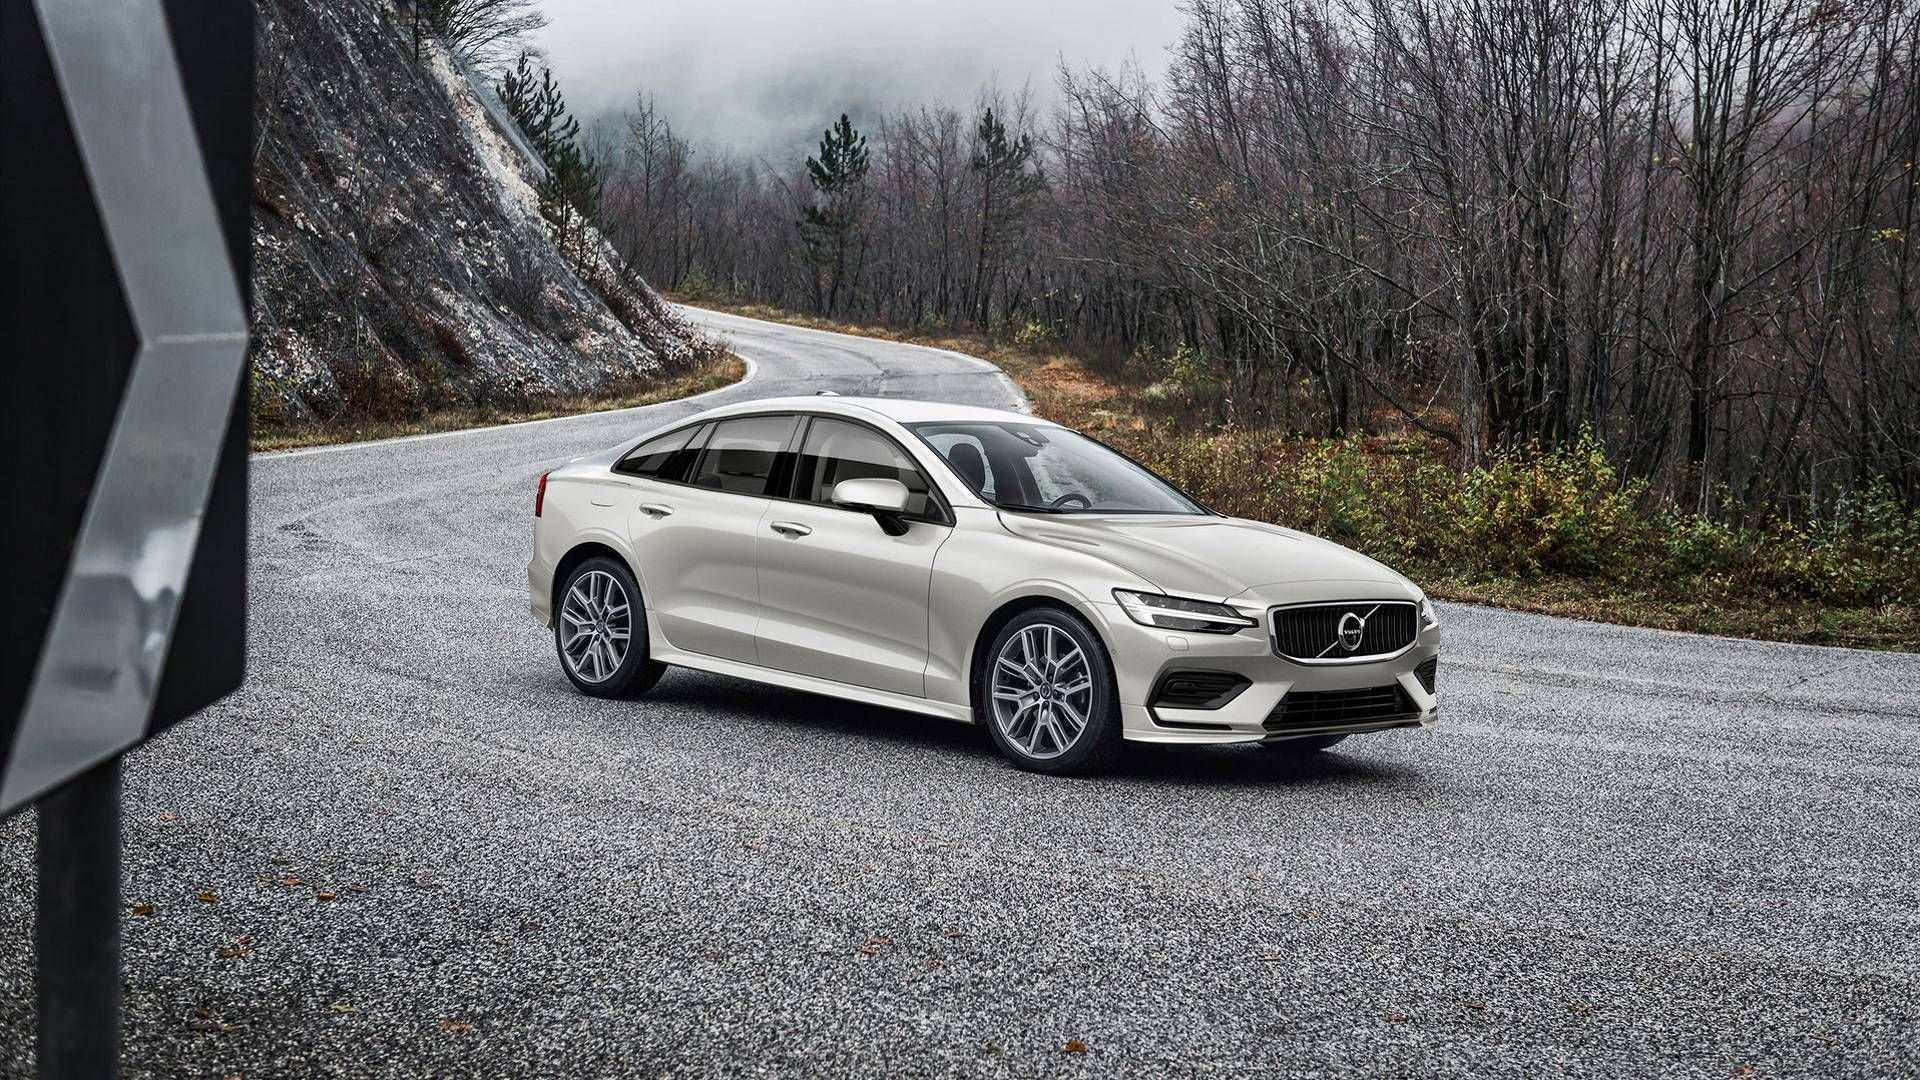 51 Great Volvo S60 2020 Wallpaper Redesign with Volvo S60 2020 Wallpaper